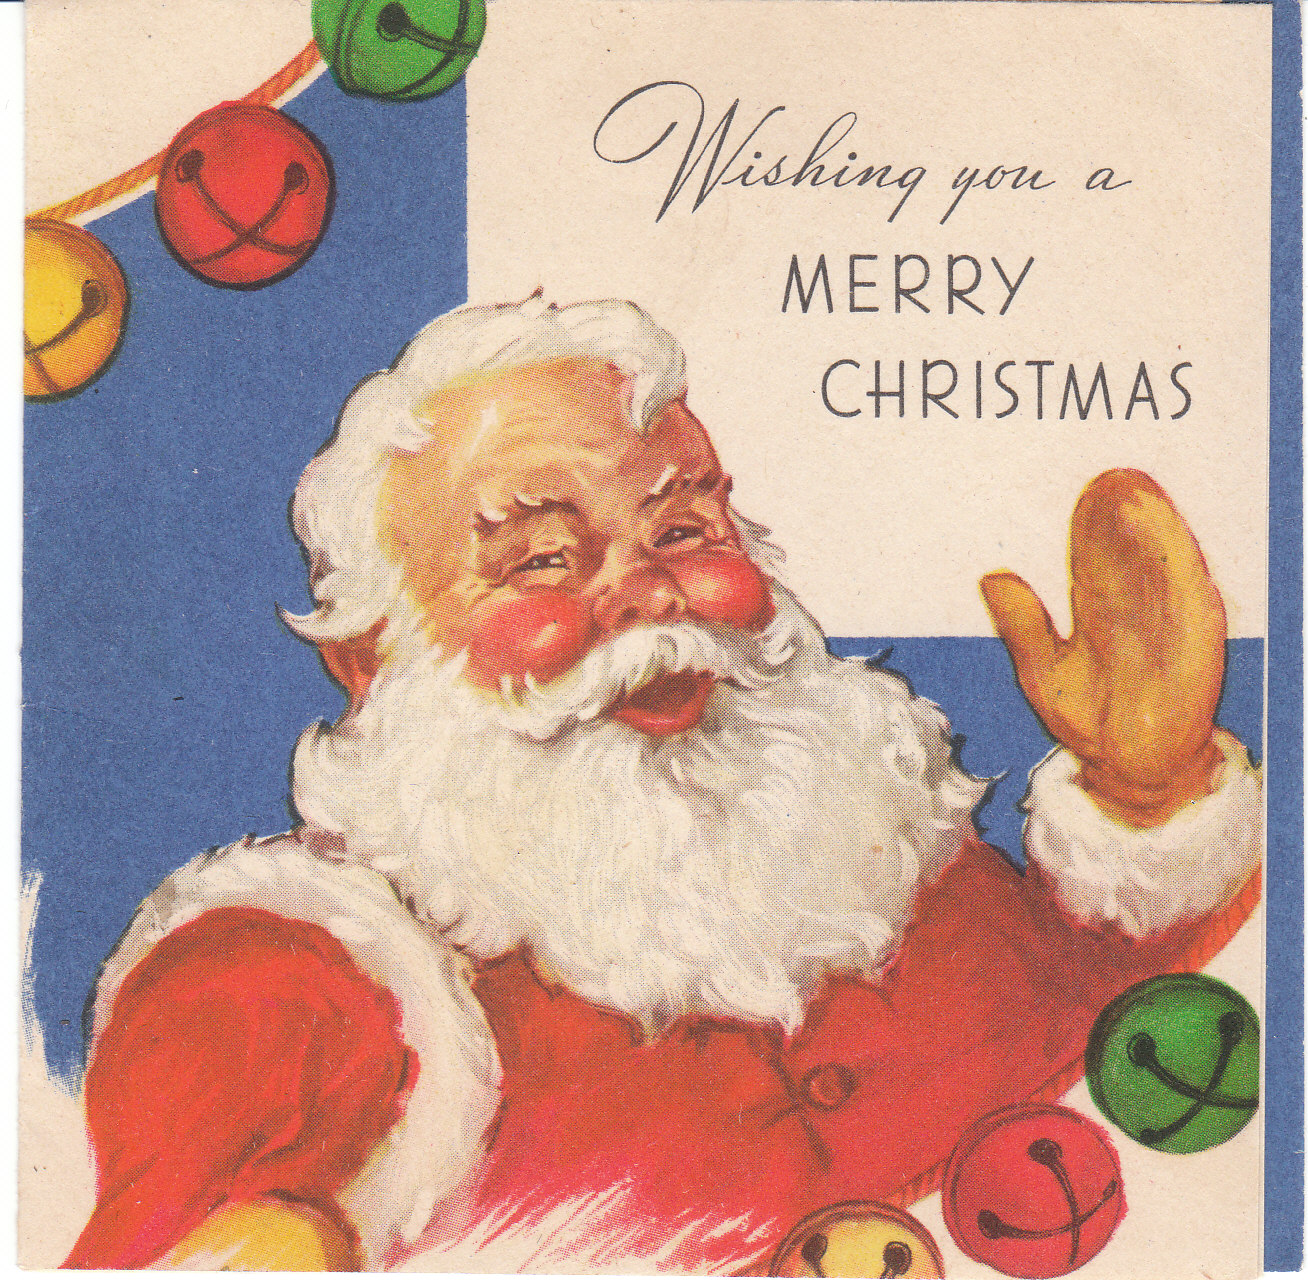 Vintage christmas card of the day santa claus with jingle bells